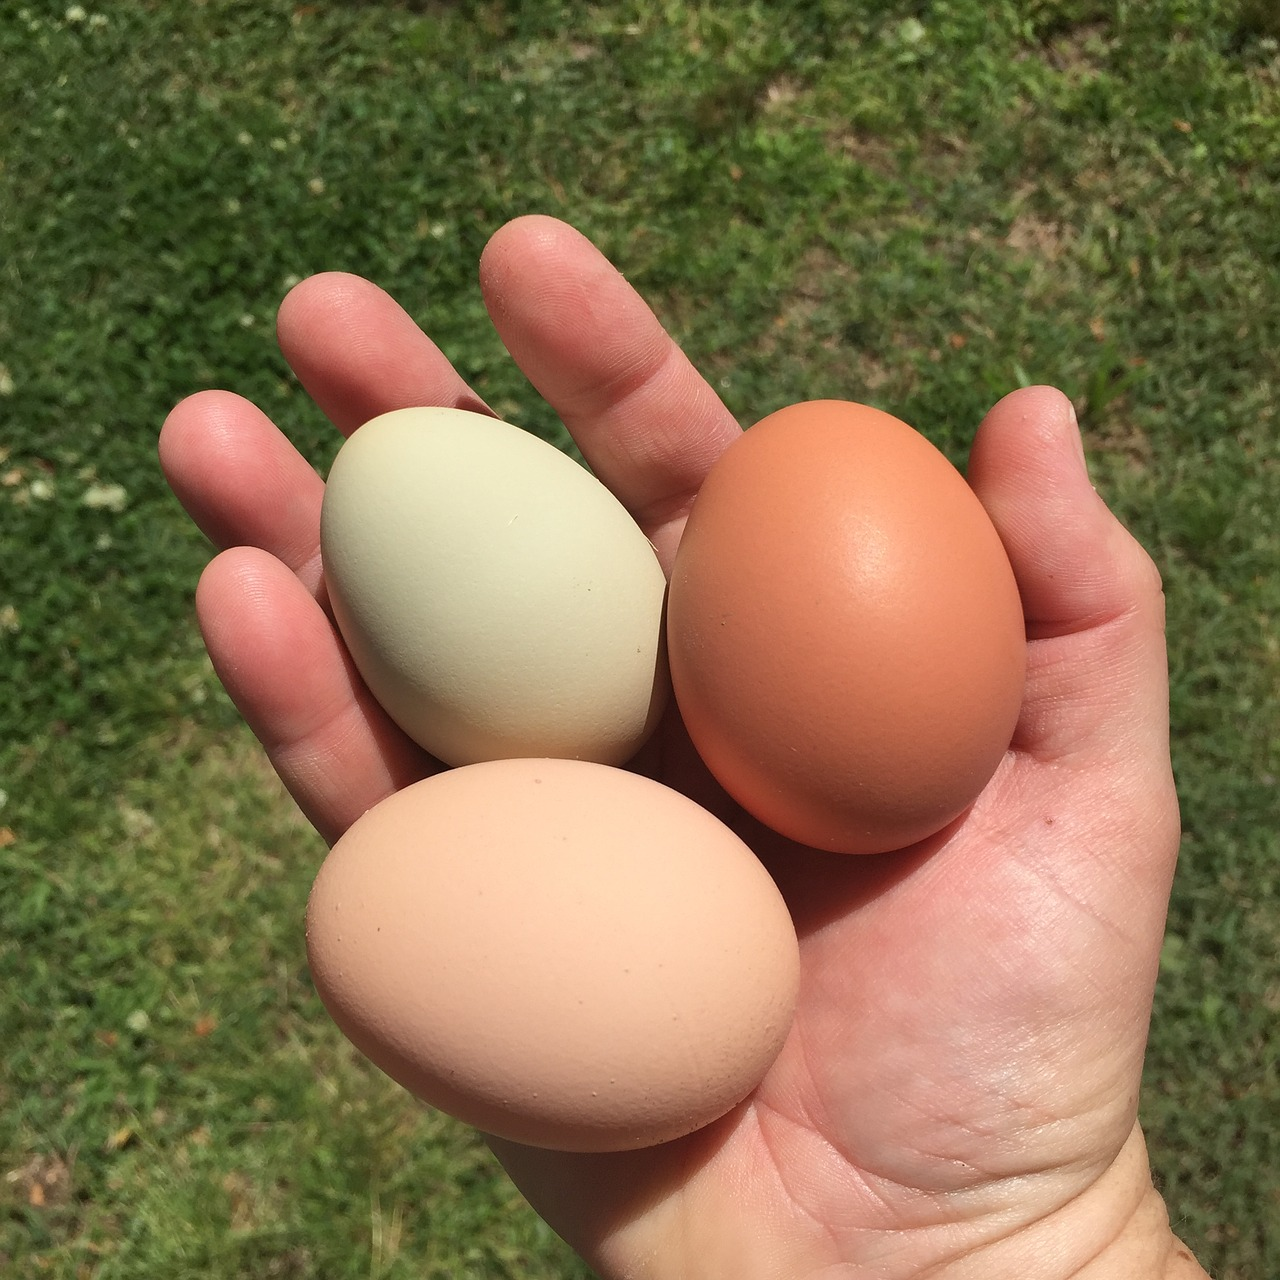 eggs chickens backyard chickens free photo